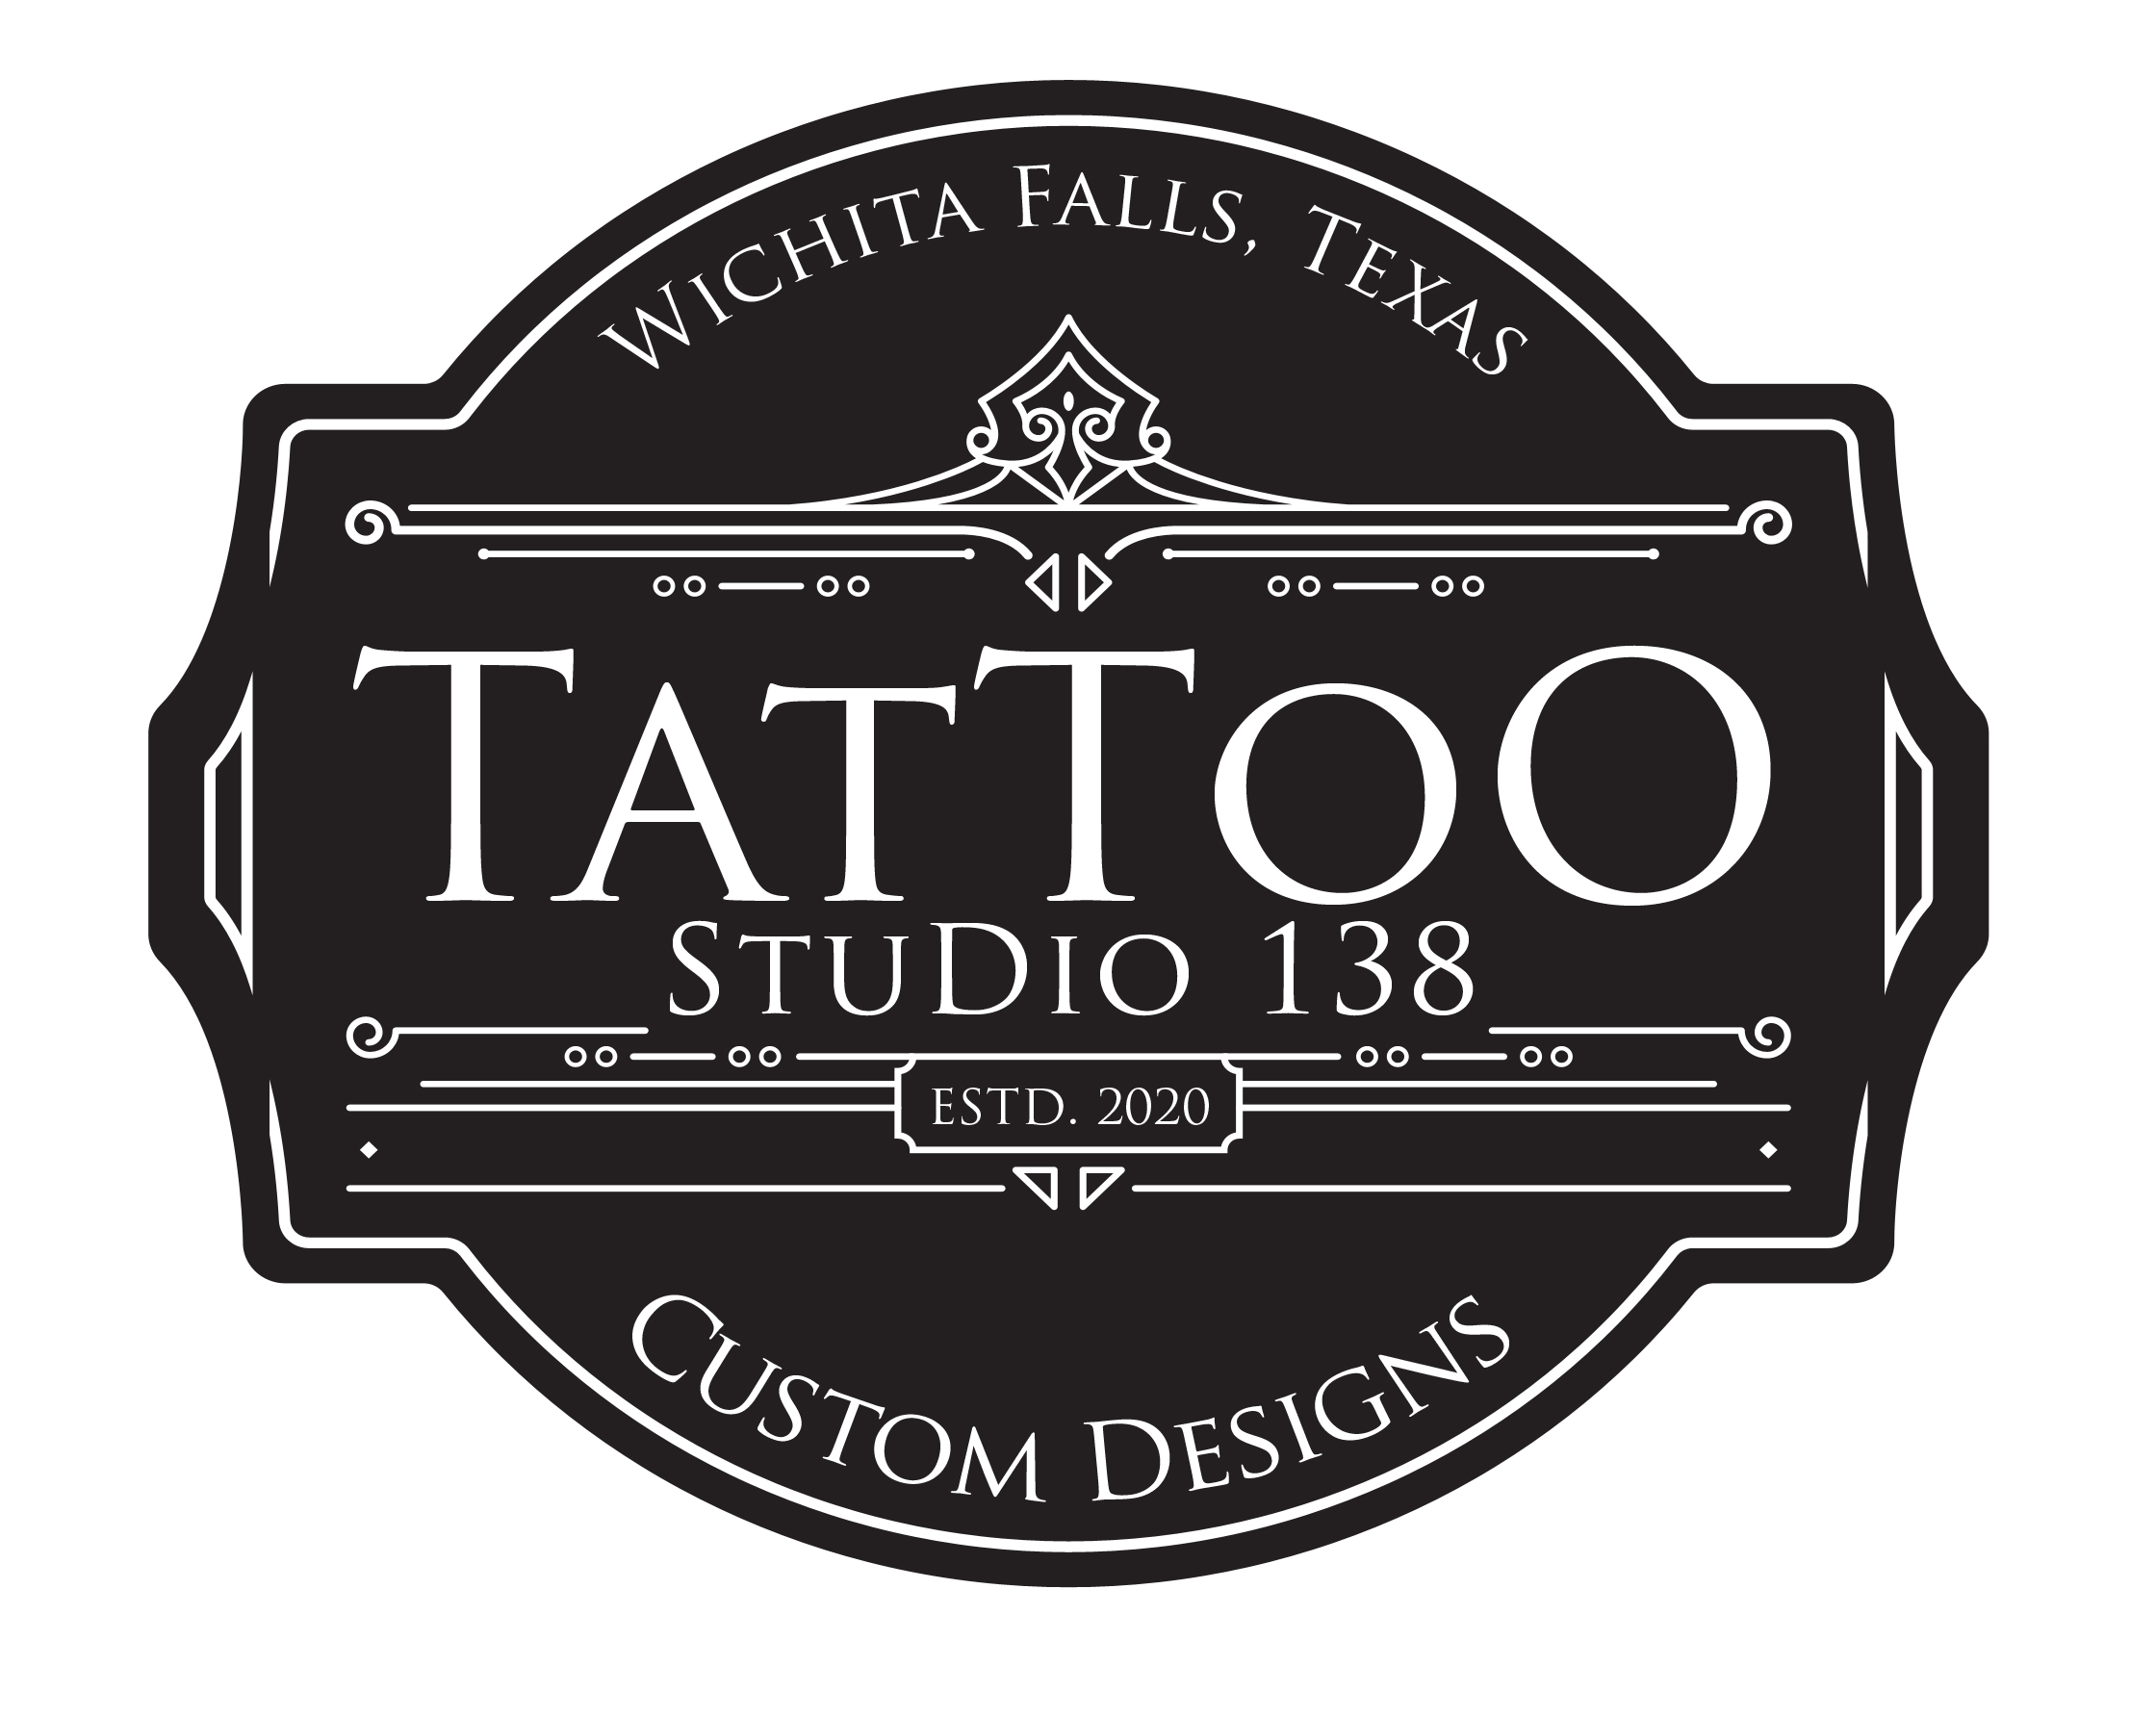 Tattoo Studio 138